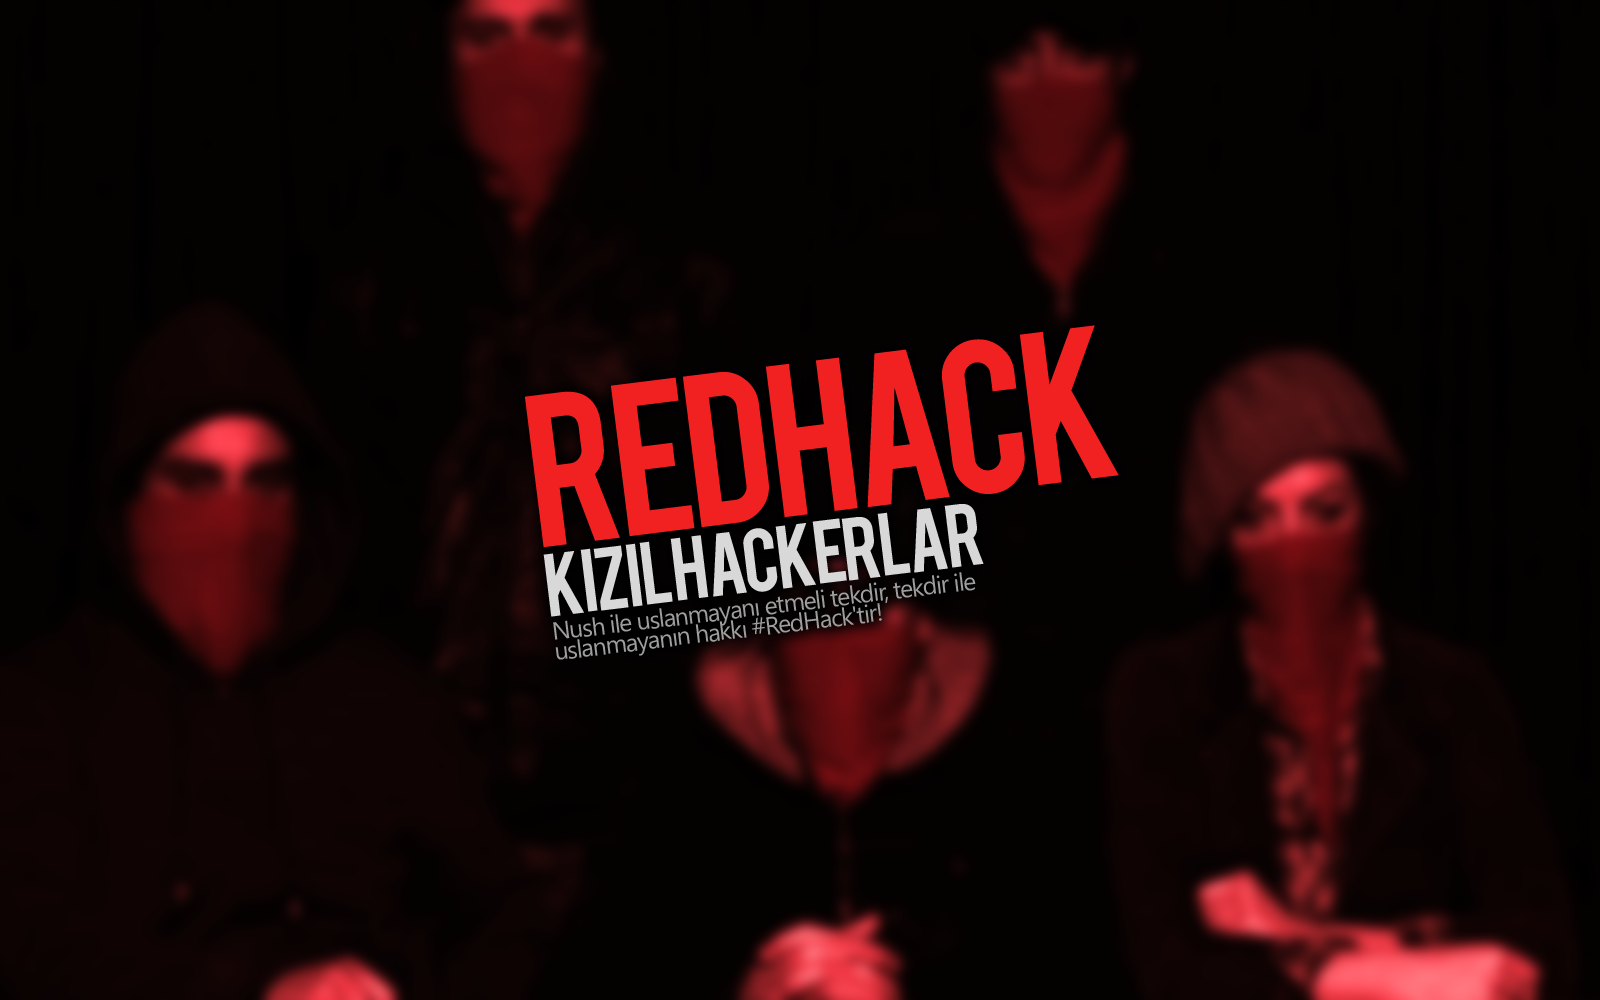 redhack-leaks-4k-turkcell-numbers-against-facilitating-ministers-with-new-numbers